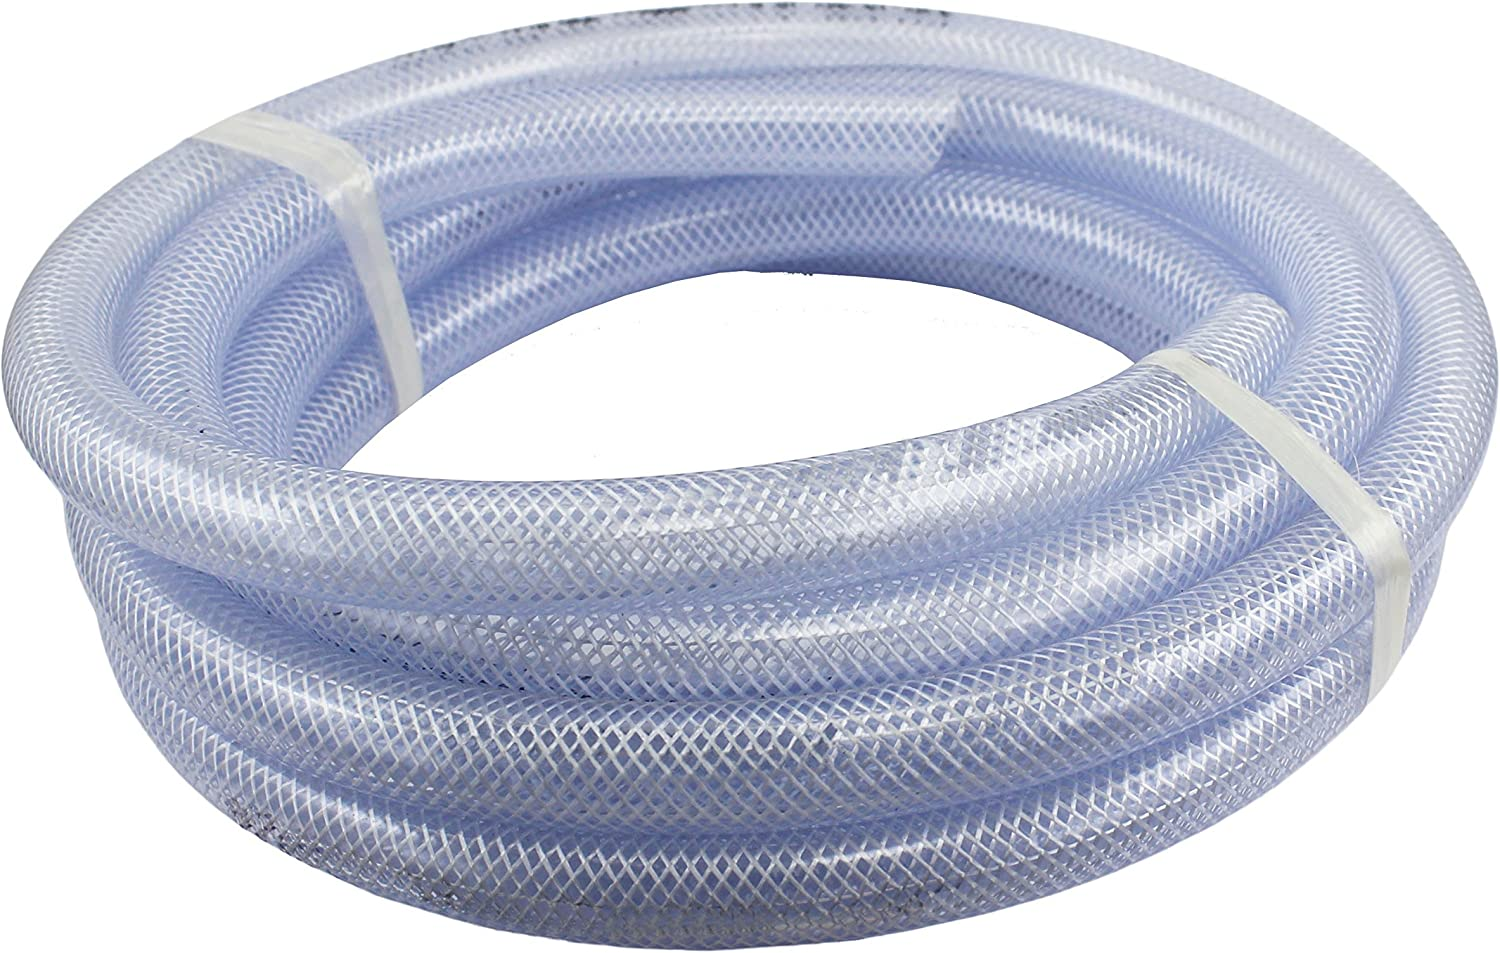 "10 ft x 3/4"" ID High Pressure Braided Clear Flexible PVC Tubing Heavy Duty UV Chemical Resistant Vinyl Hose"